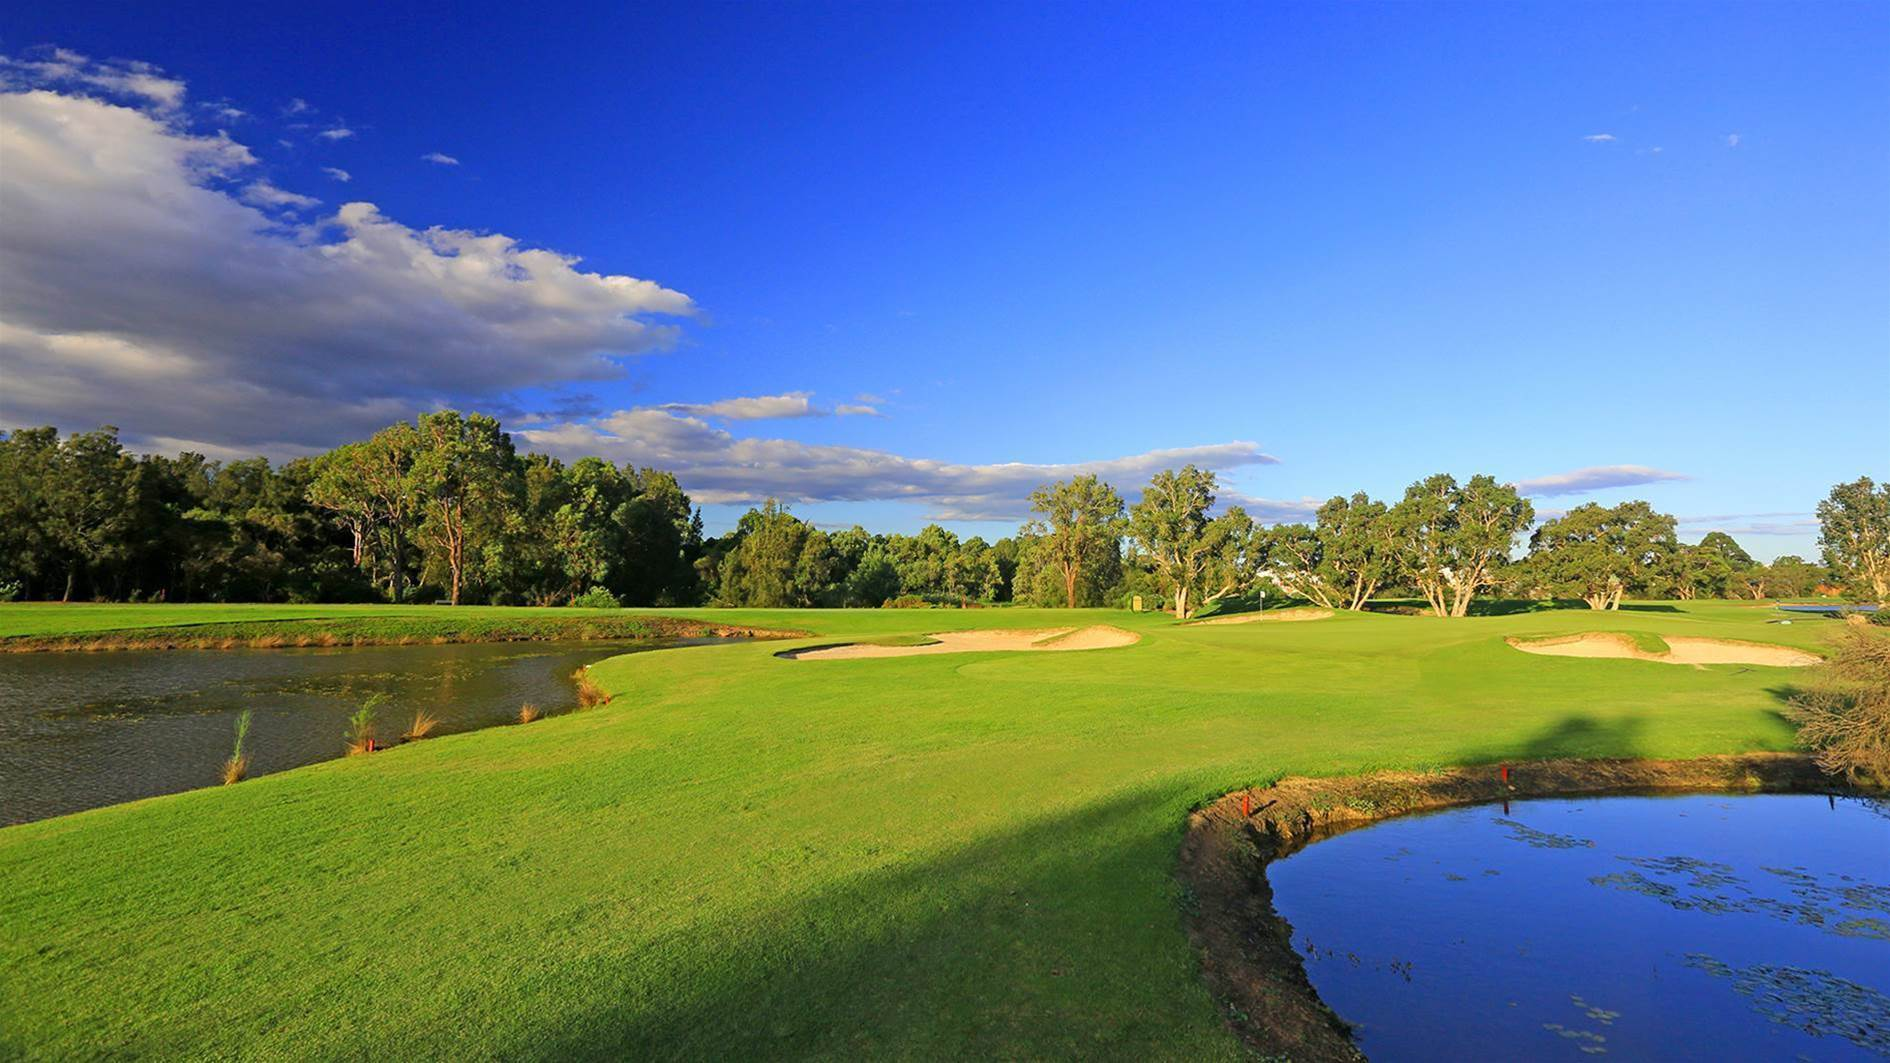 CLUB OF THE MONTH: Bankstown Golf Club